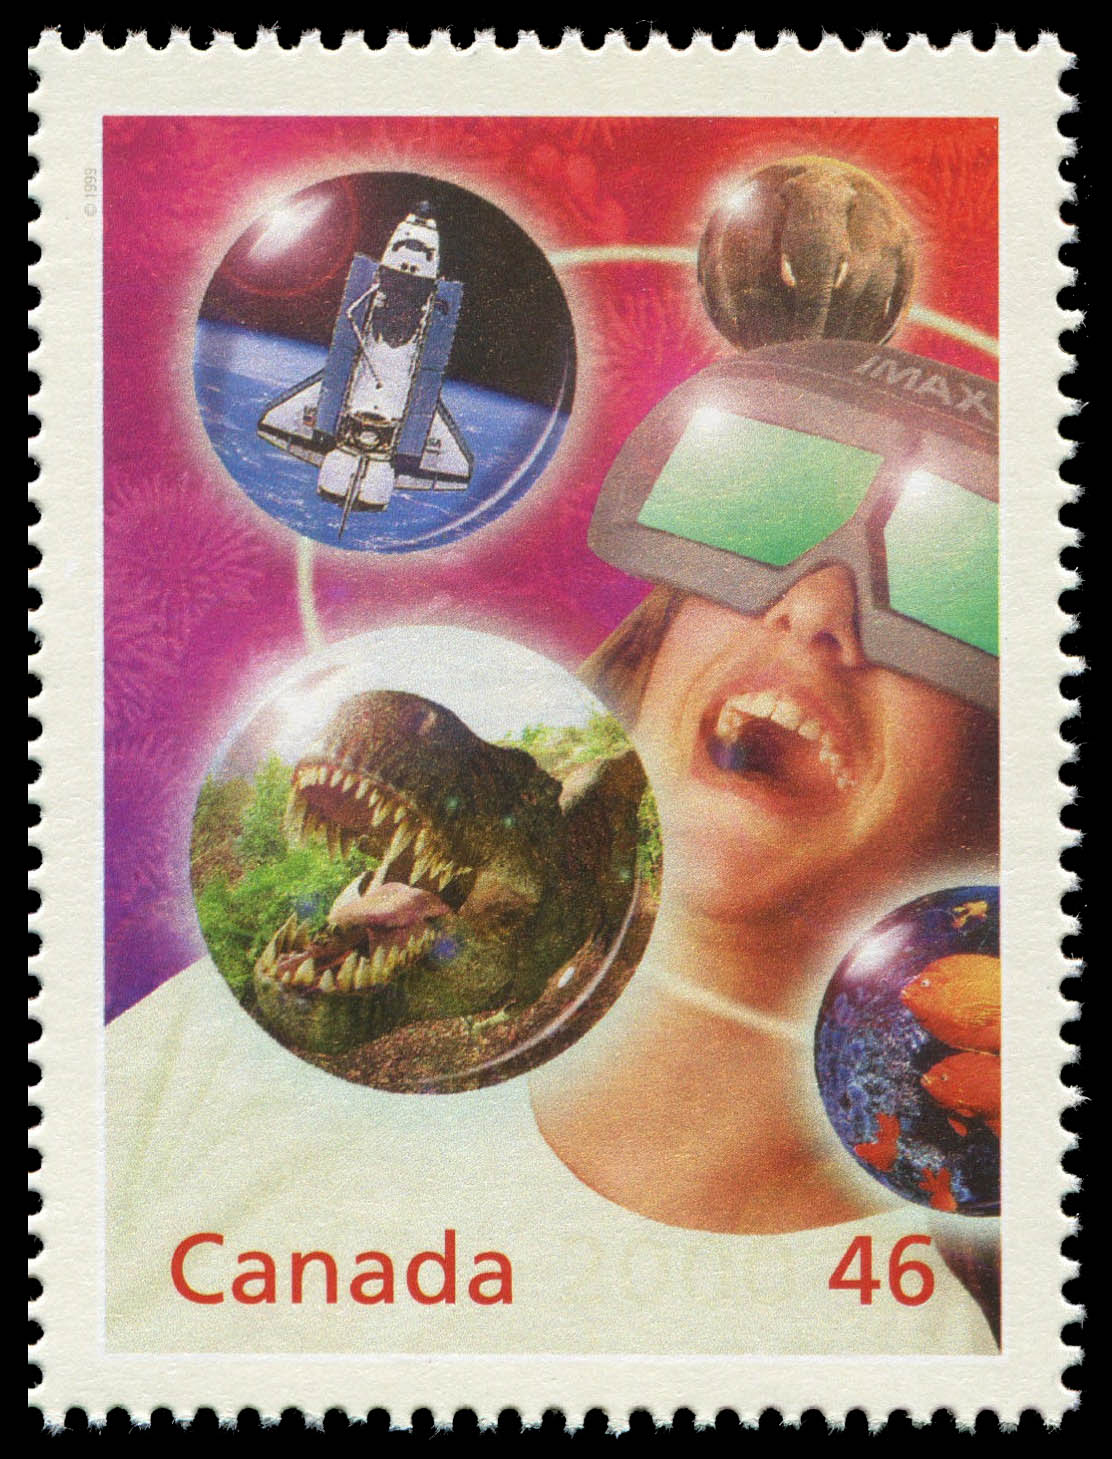 IMAX: A New Kind of Movie Canada Postage Stamp   The Millennium Collection, Media Technologies